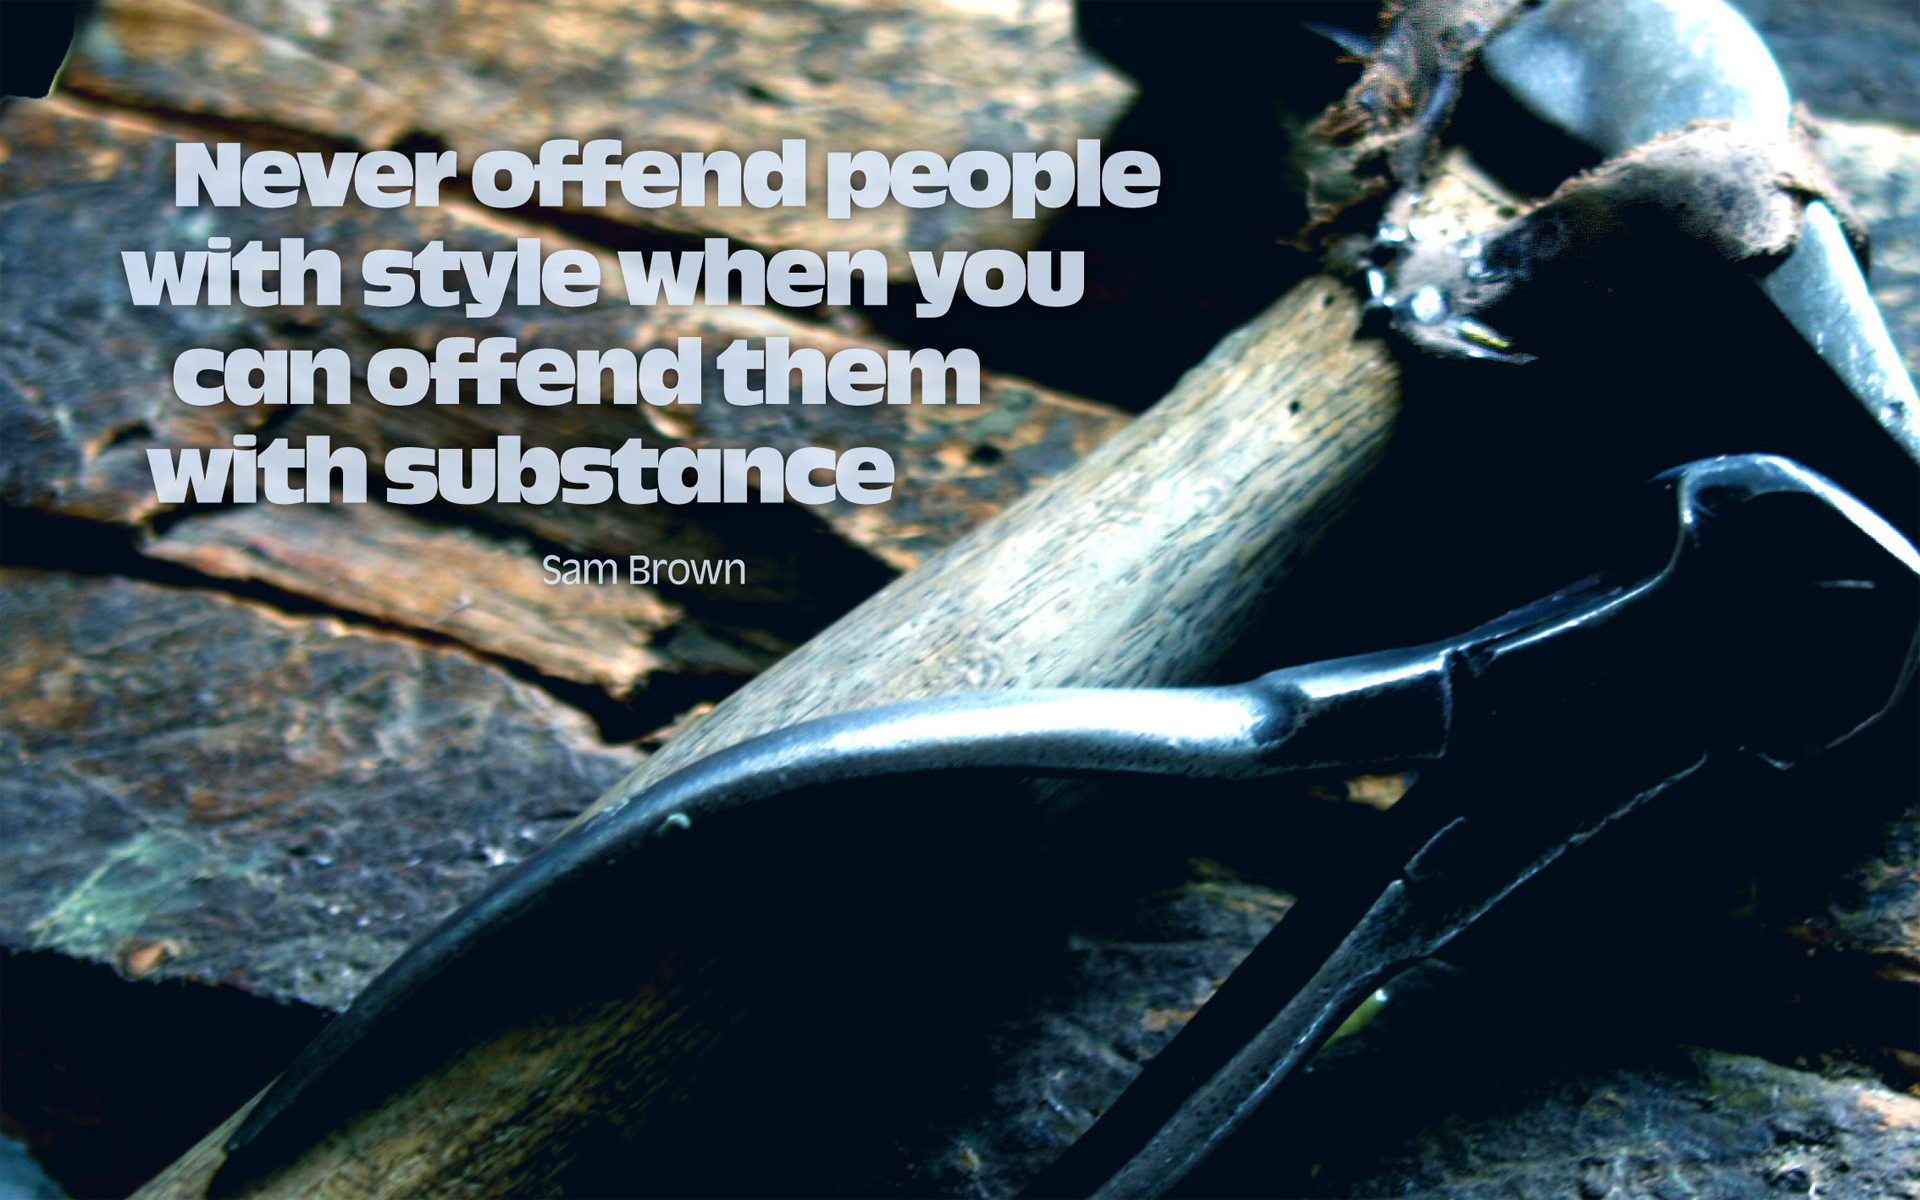 Never offend people with style when you can offend them with substance. — Sam Brown [1920 x 1200]